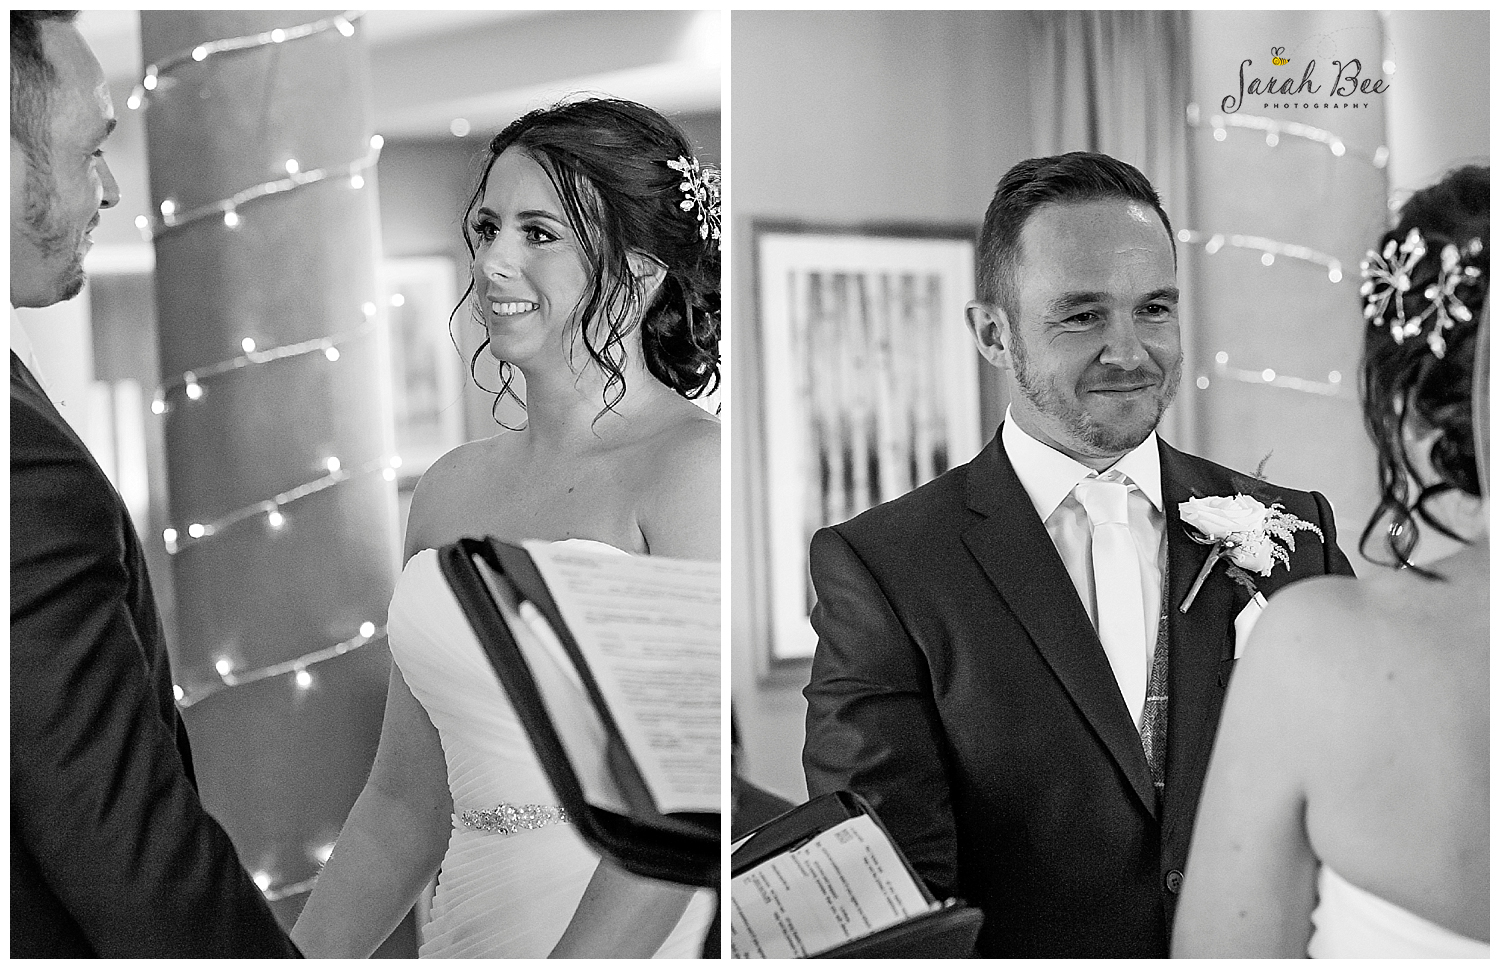 documentory wedding photography with sarah bee photography, wedding photography, wedding photographer at 315 bar and restaurant huddersfield, nateral wedding photography_0380.jpg